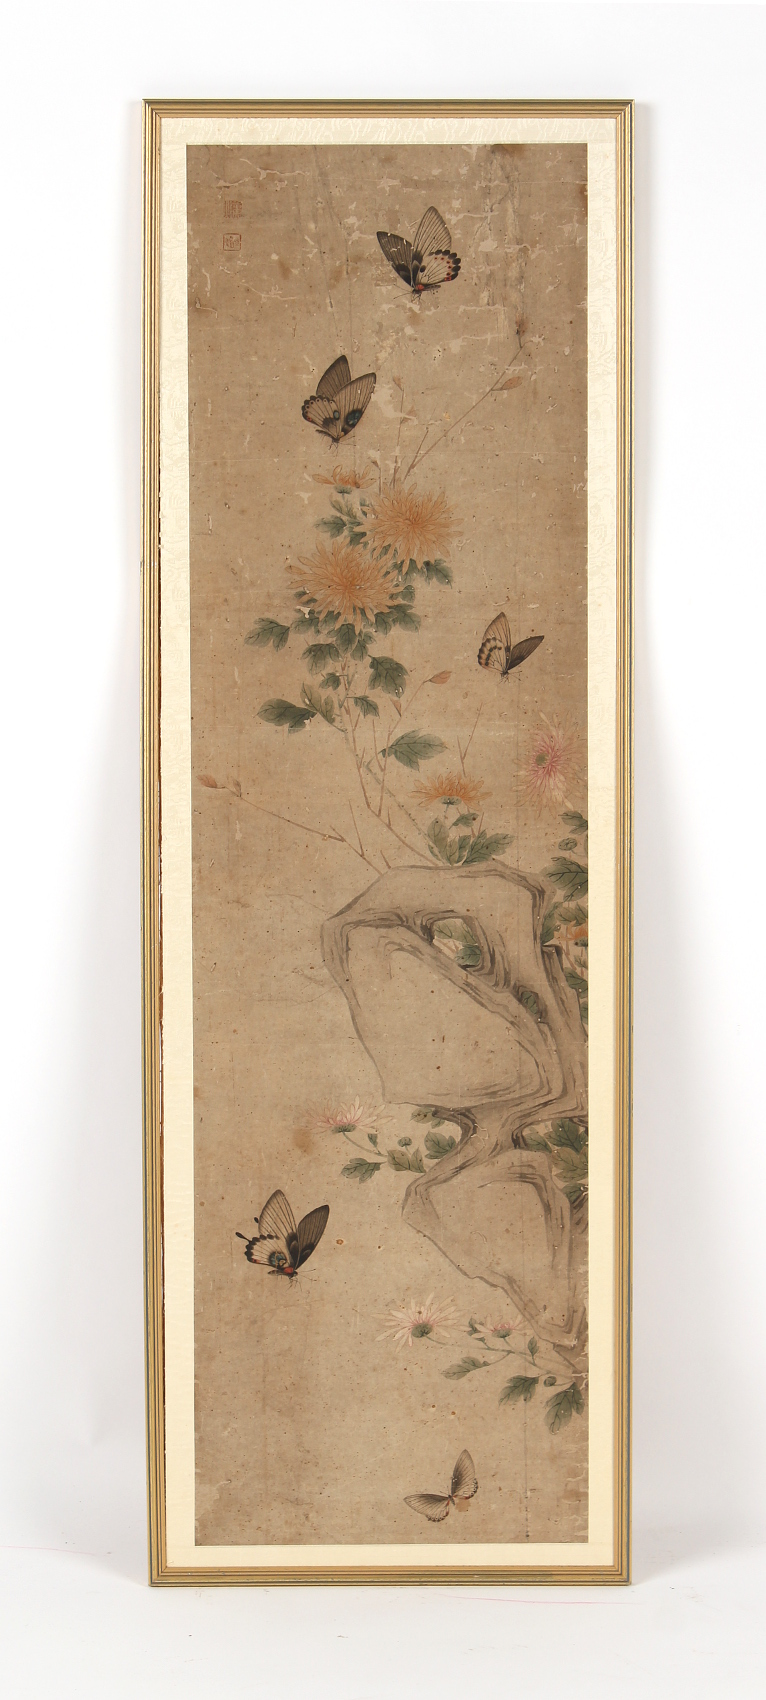 Property of a gentleman - a Chinese painting on paper depicting butterflies among rocks & flowers,